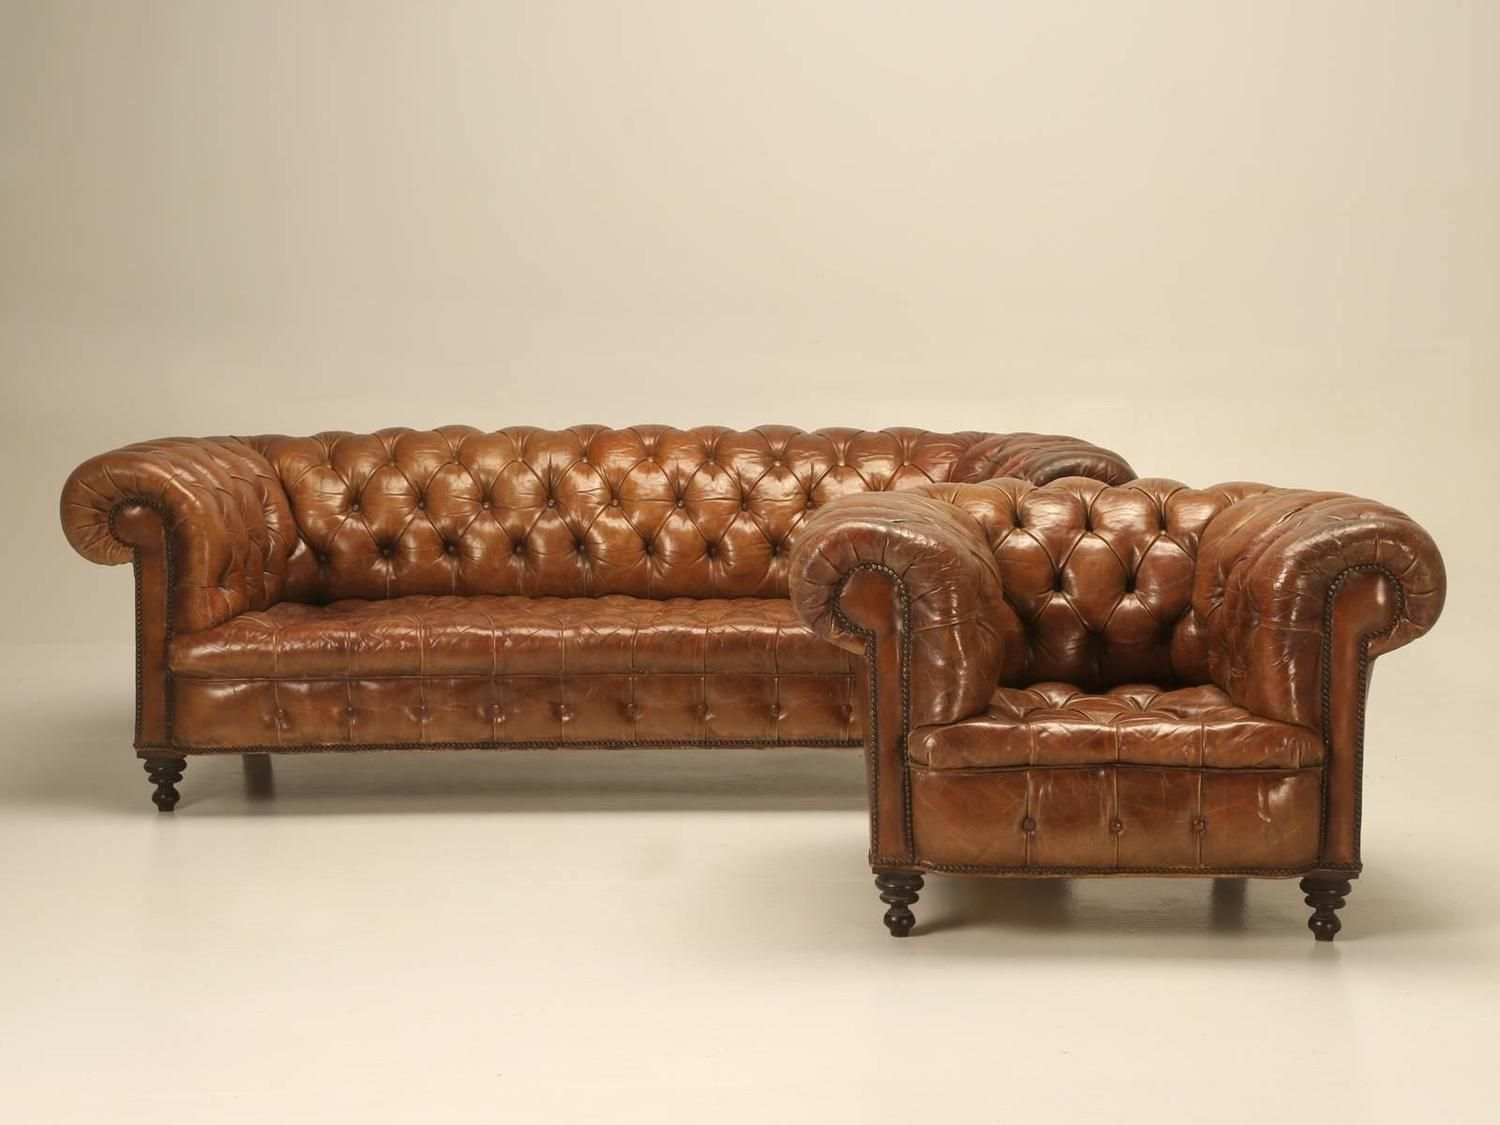 Antique Leather Chesterfield Sofa In Original Leather ...